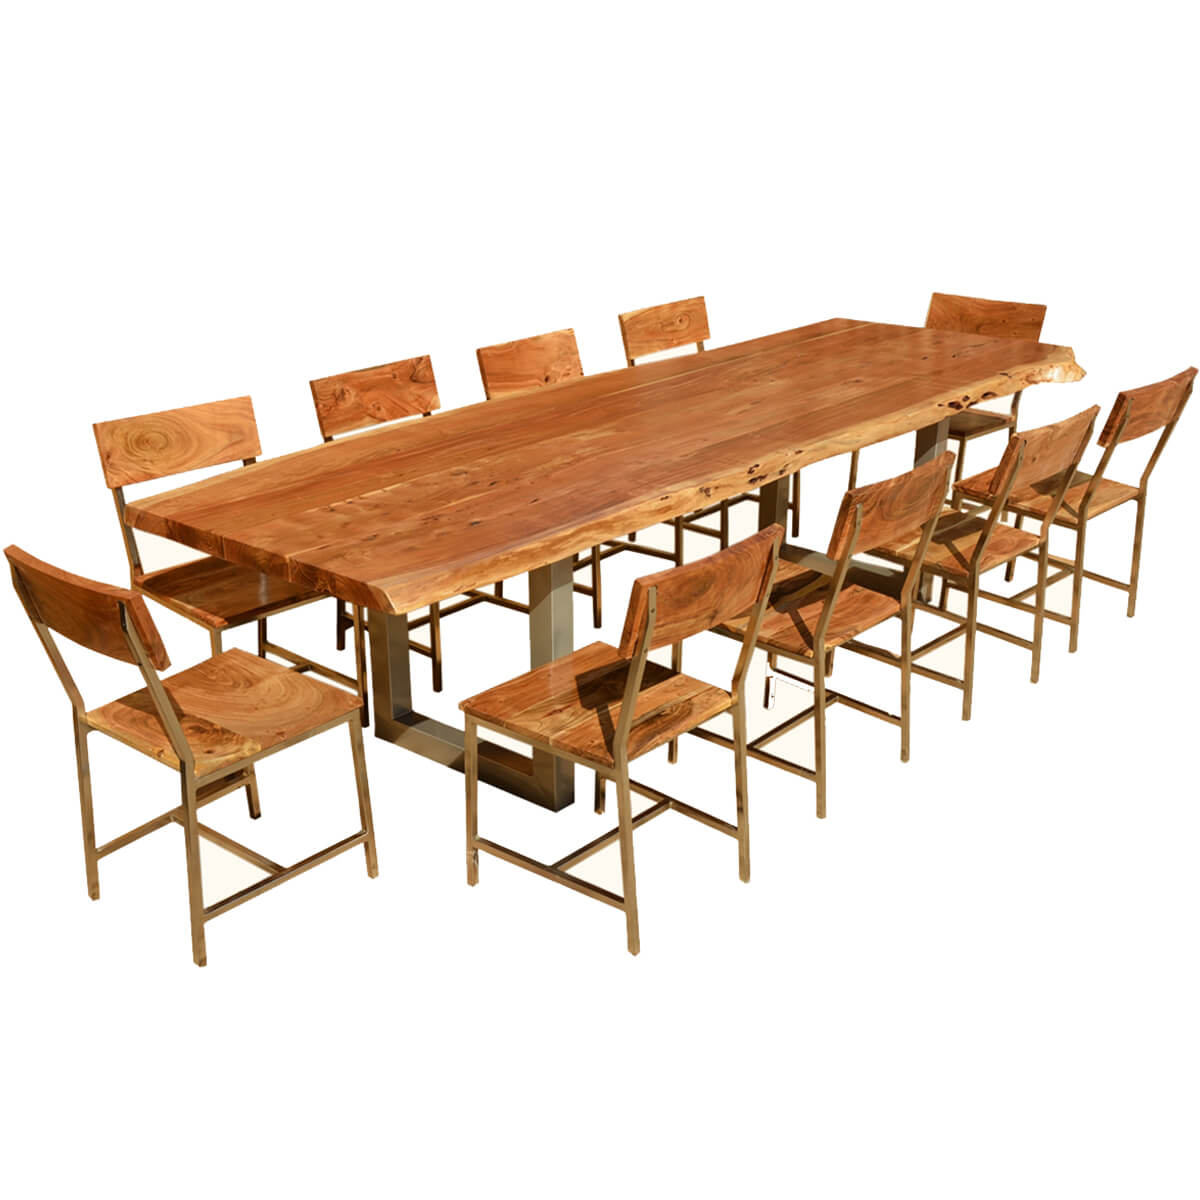 Live Edge Acacia Wood Amp Iron 117 Quot Modern Dining Table Amp 10